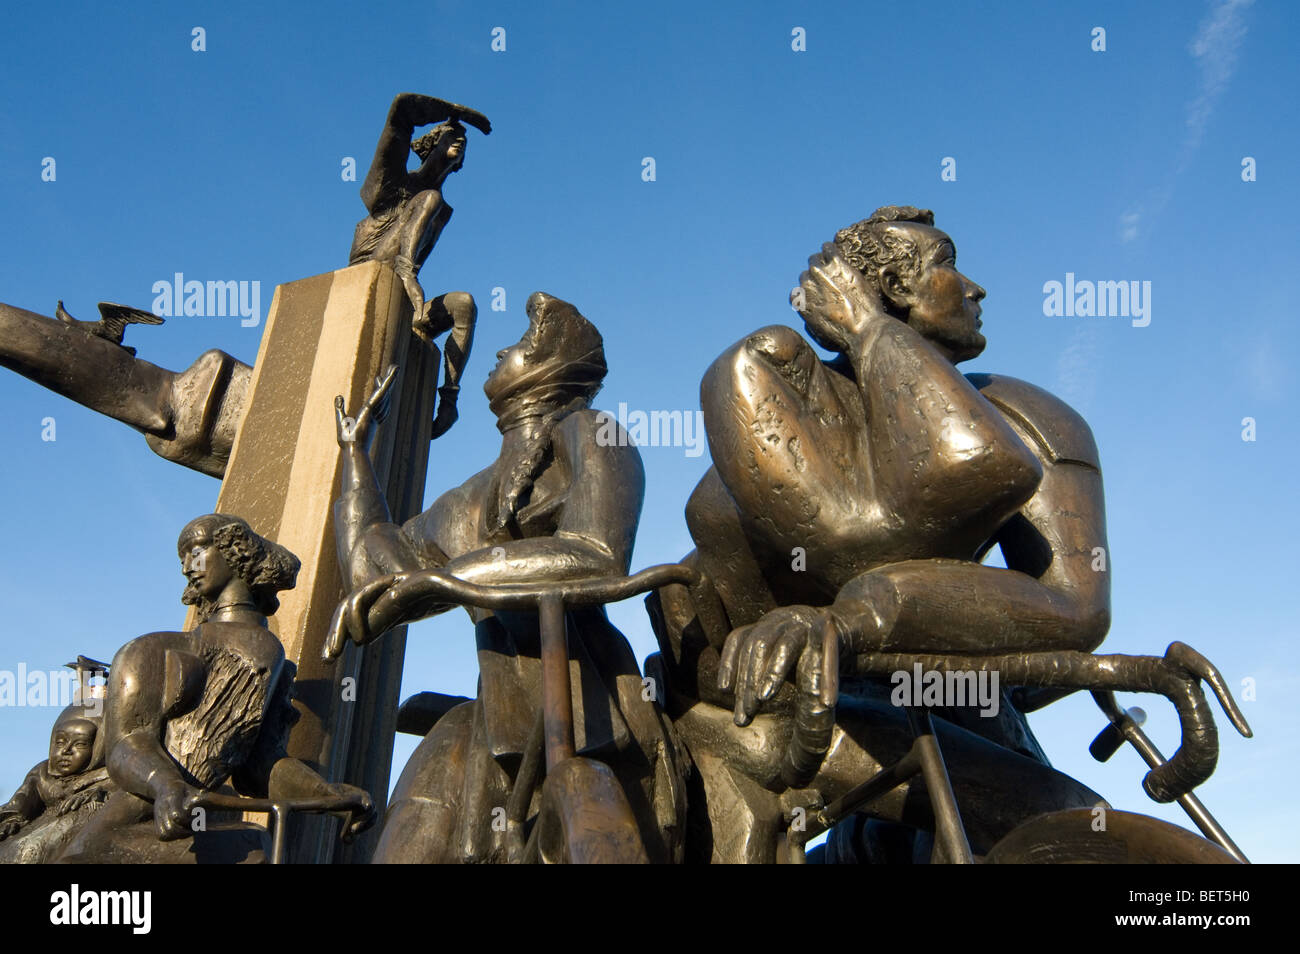 Sculpture group with fountain at the square Het Zand in the city Bruges, West Flanders, Belgium - Stock Image